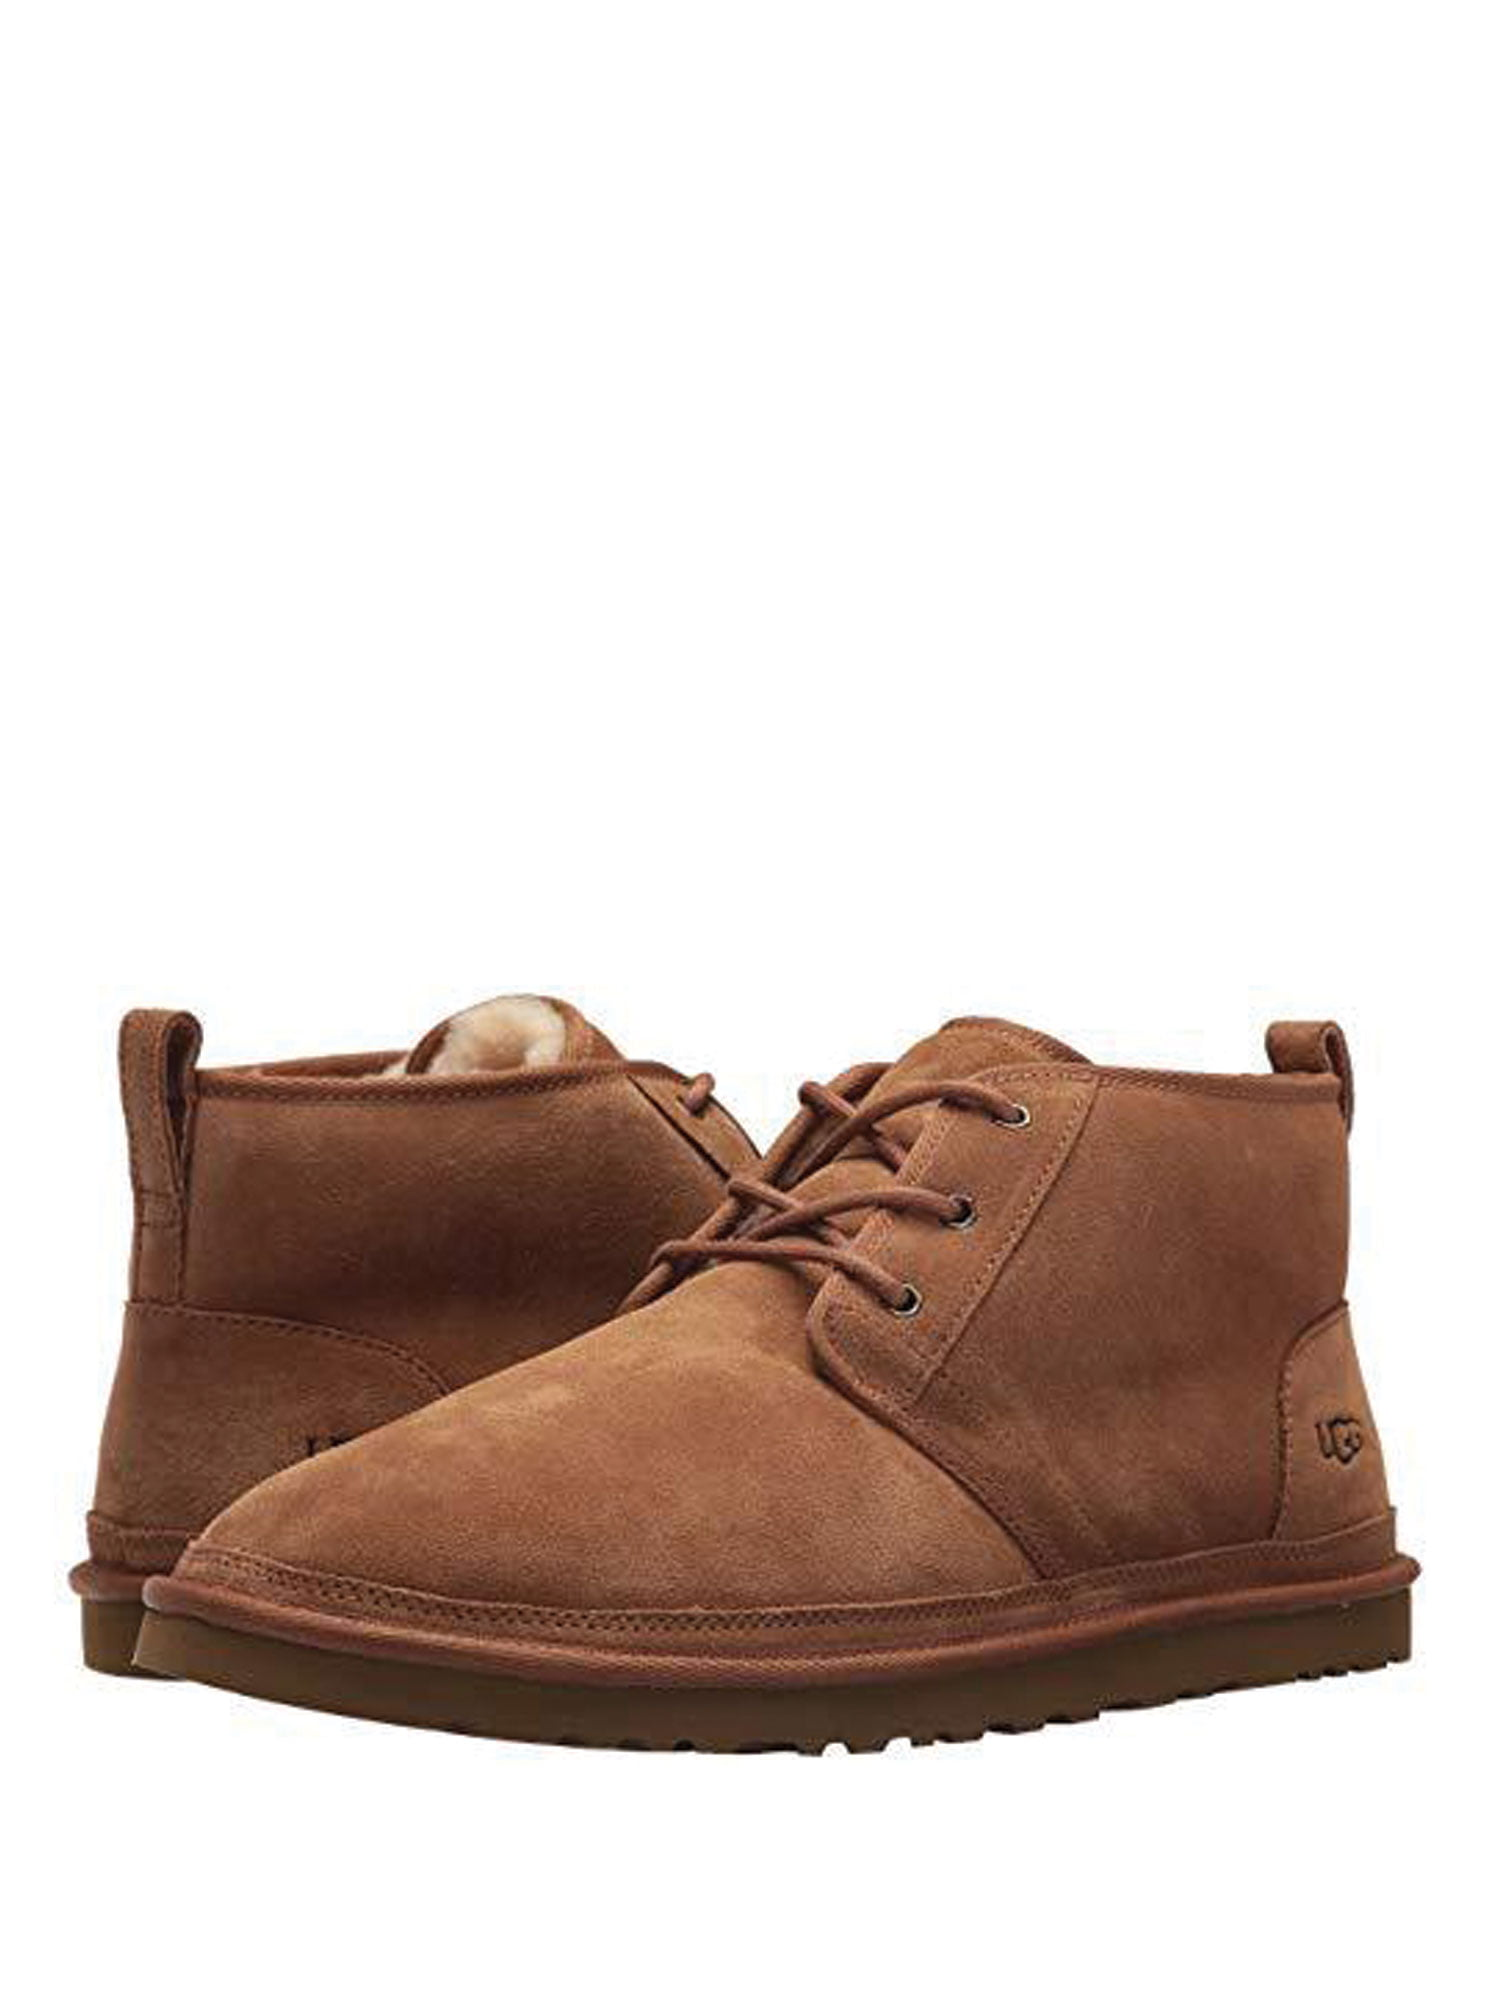 UGG Neumel Suede Men's Low Chukka Boots